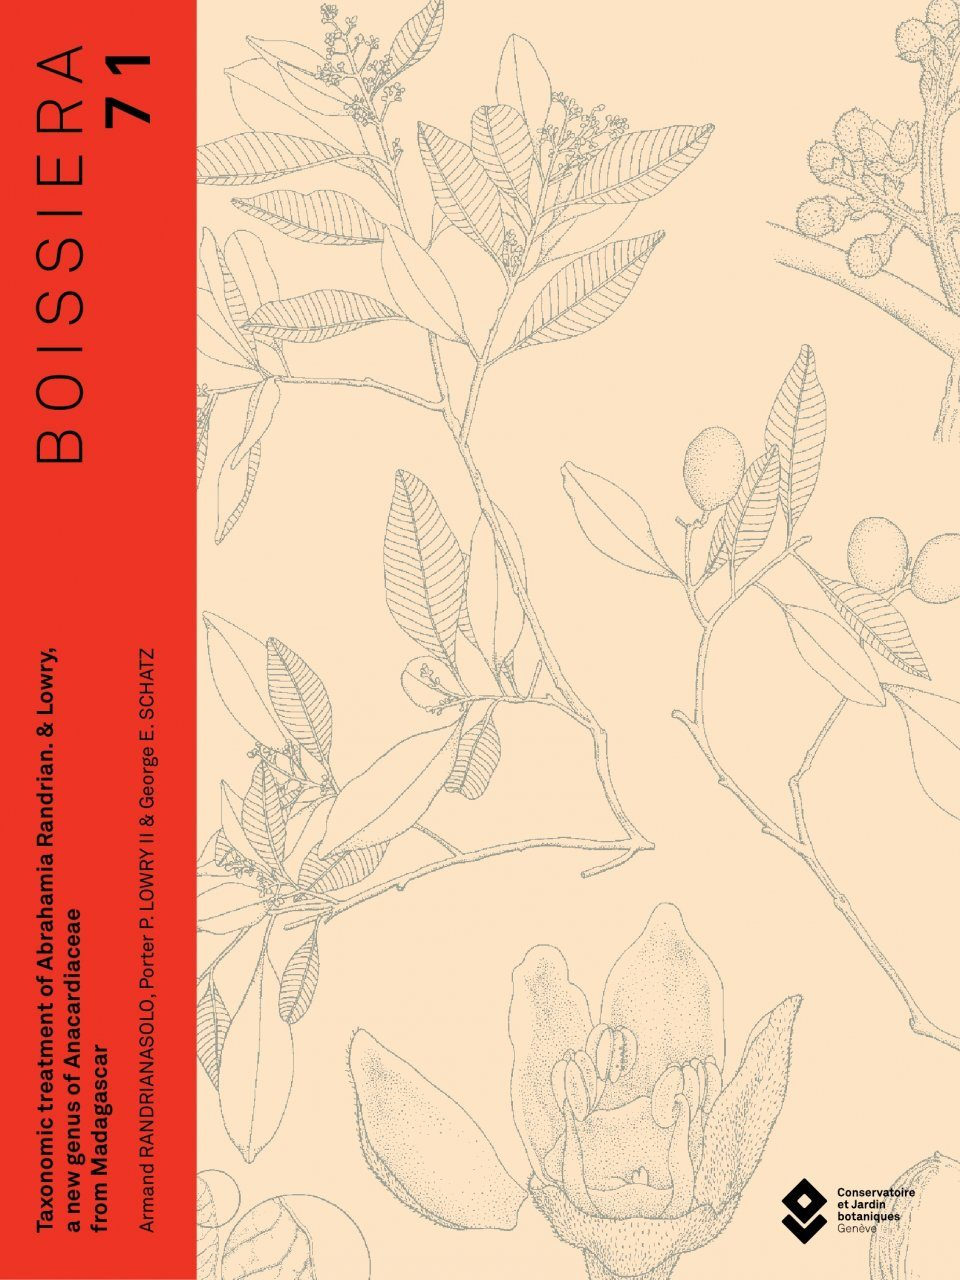 Boissiera, Volume 71: Taxonomic Treatment of Abrahamia Randrian. & Lowry, a New Genus of Anacardiaceae from Madagascar